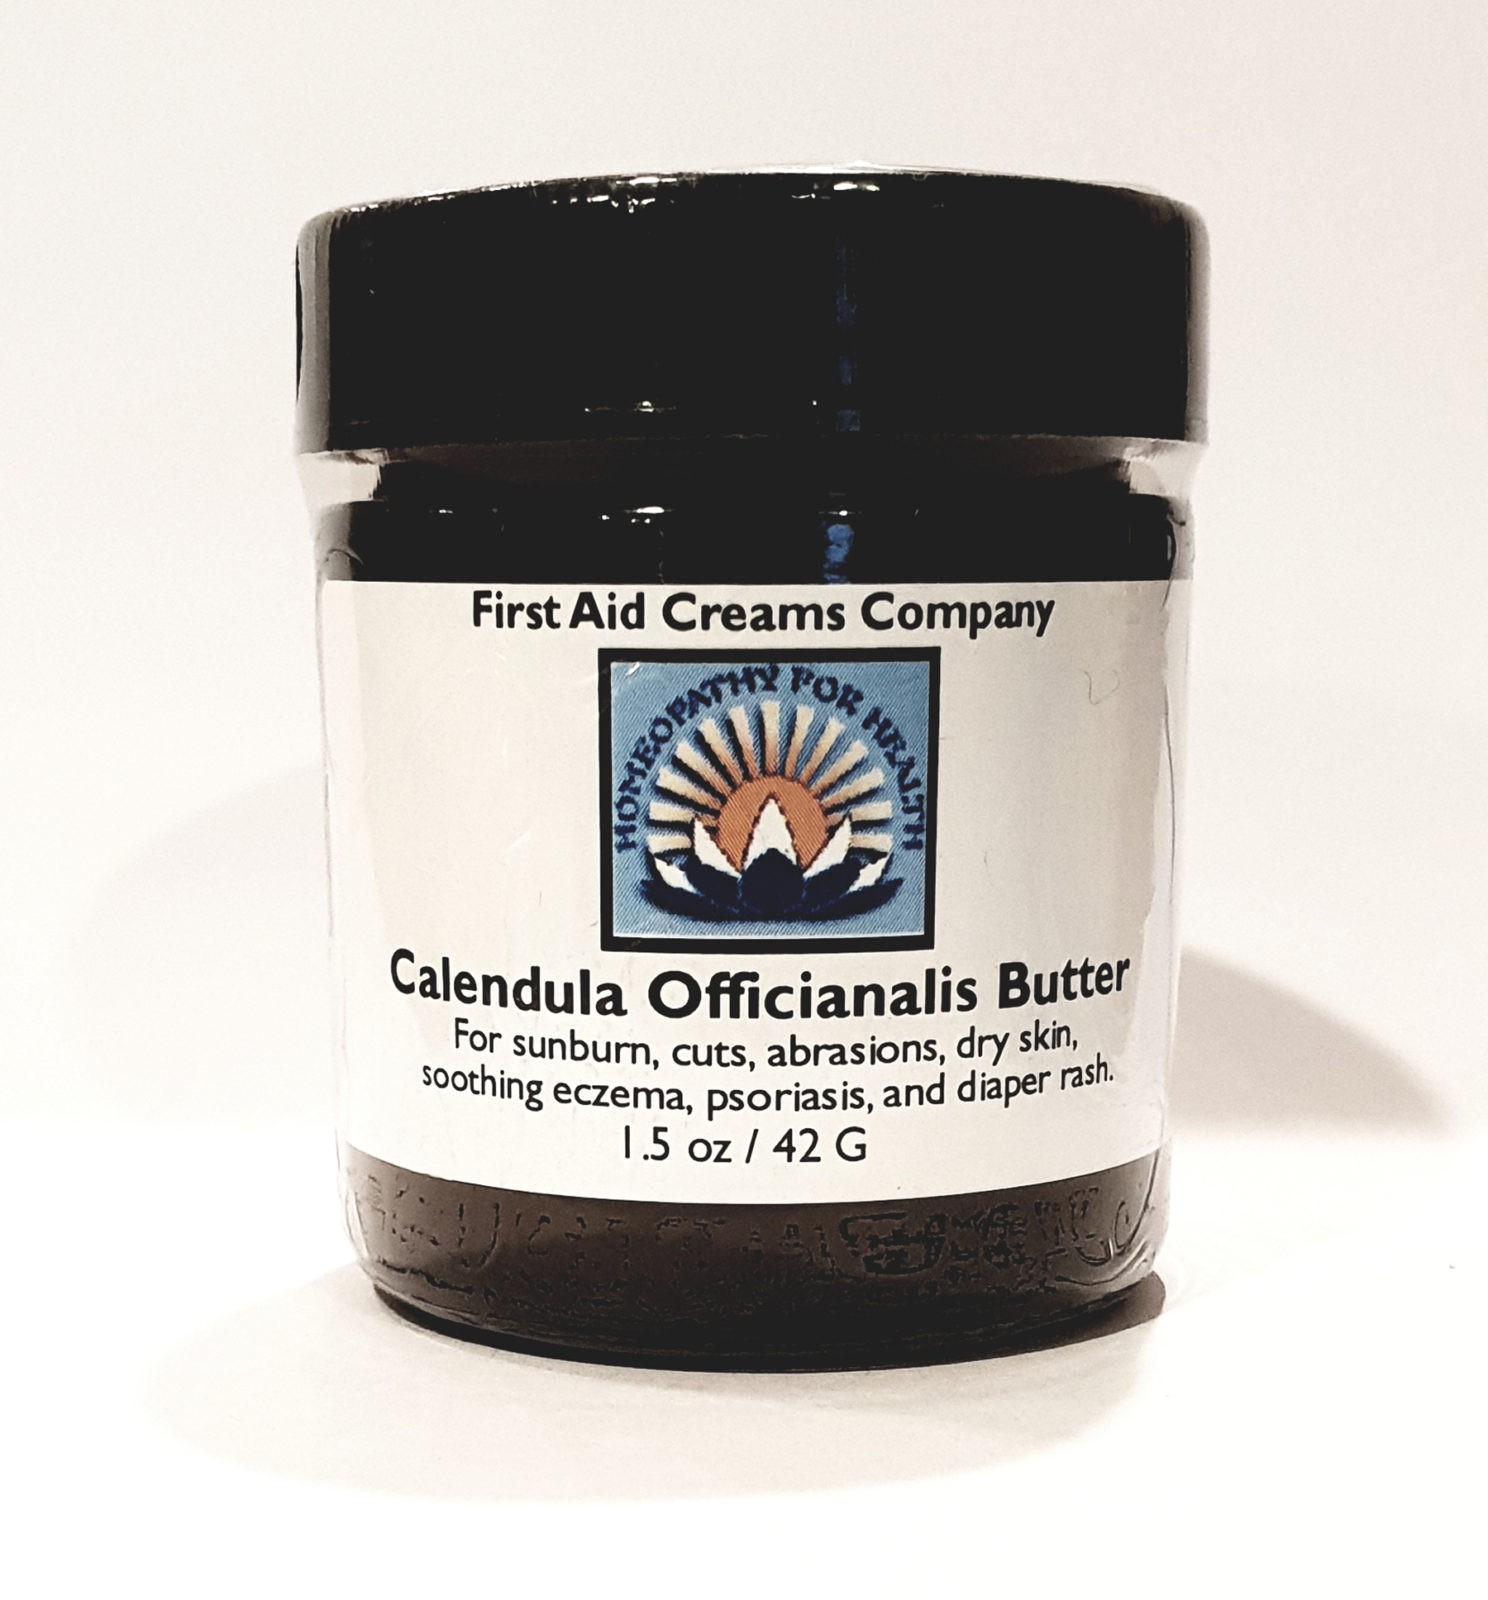 Calendula Officinalis Butter